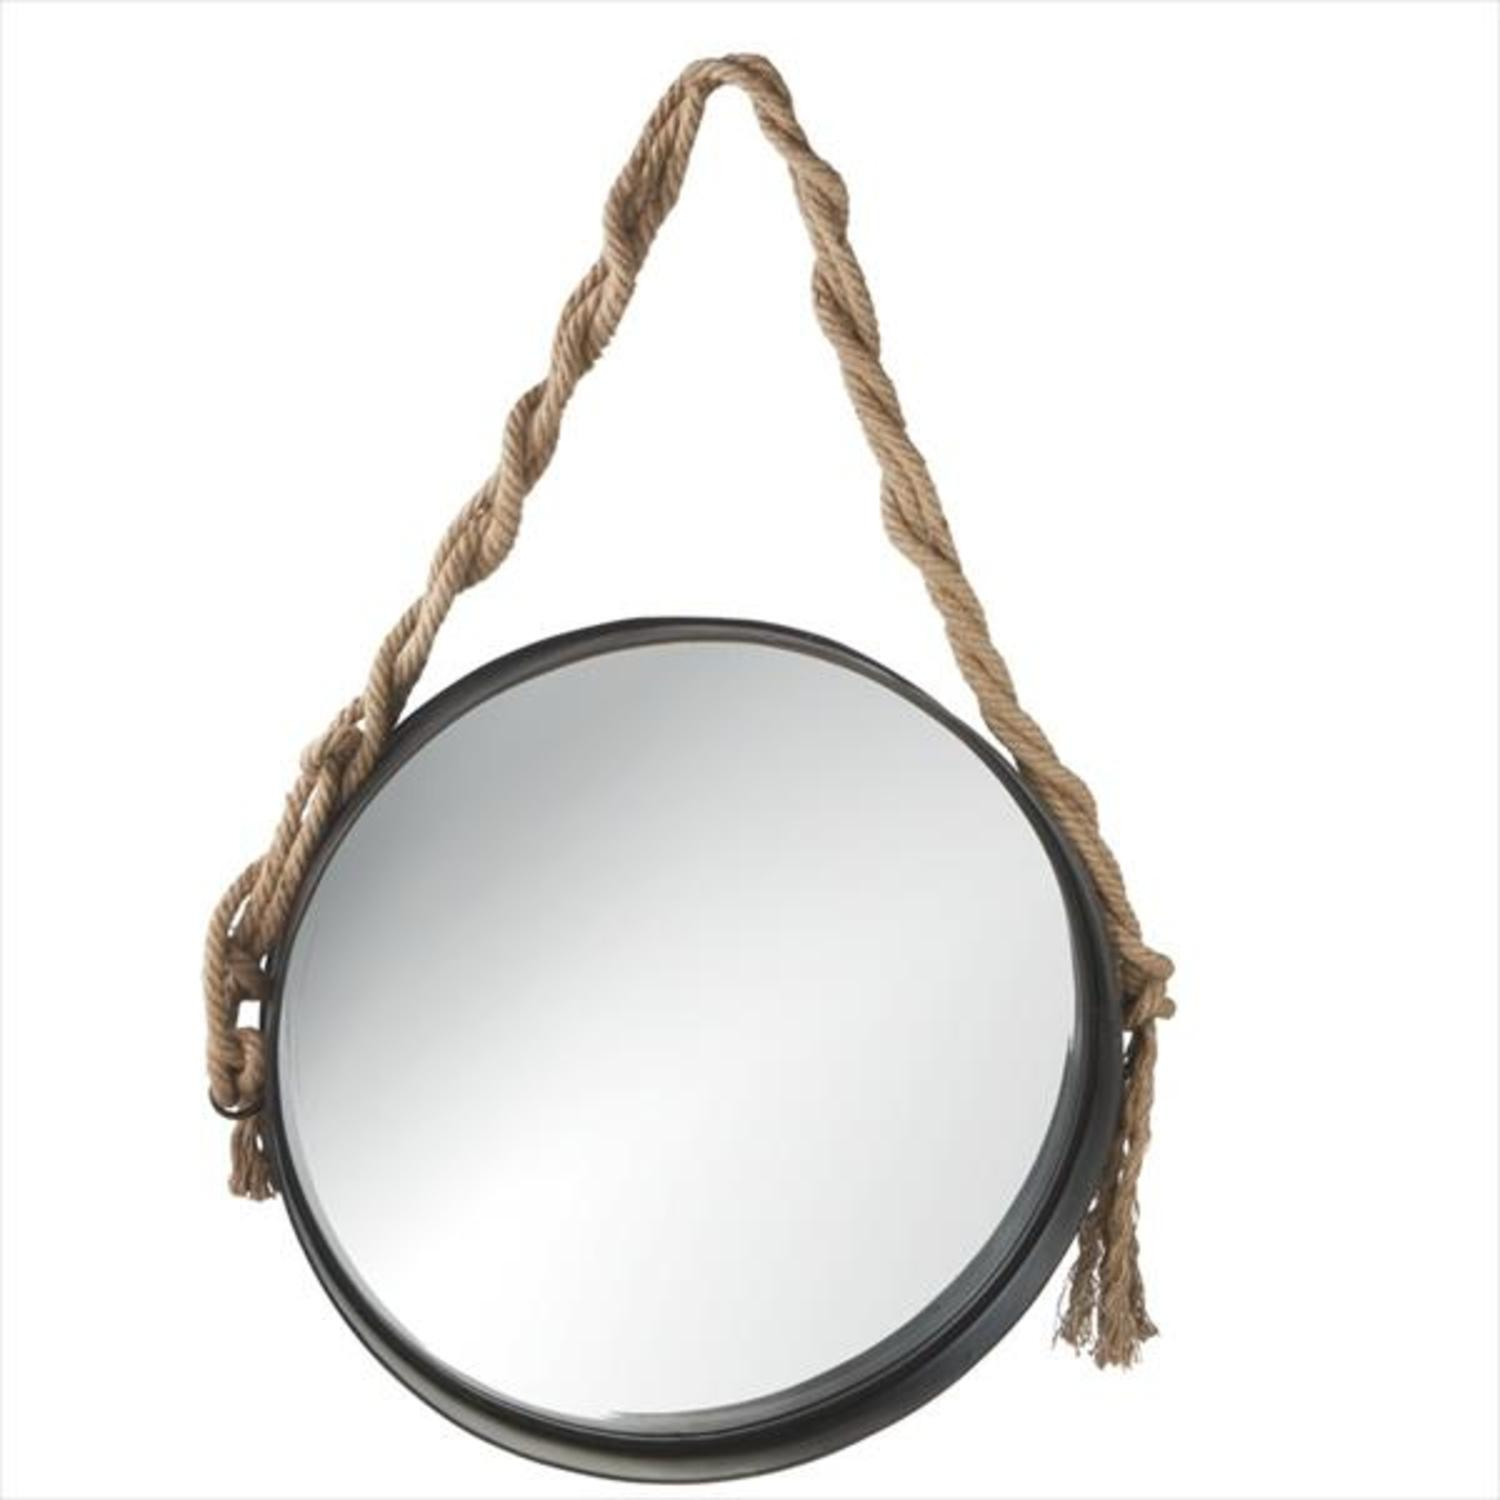 20 Black Rimmed Wall Mirror With Twisted Jute Rope Hanger Walmart Com Walmart Com